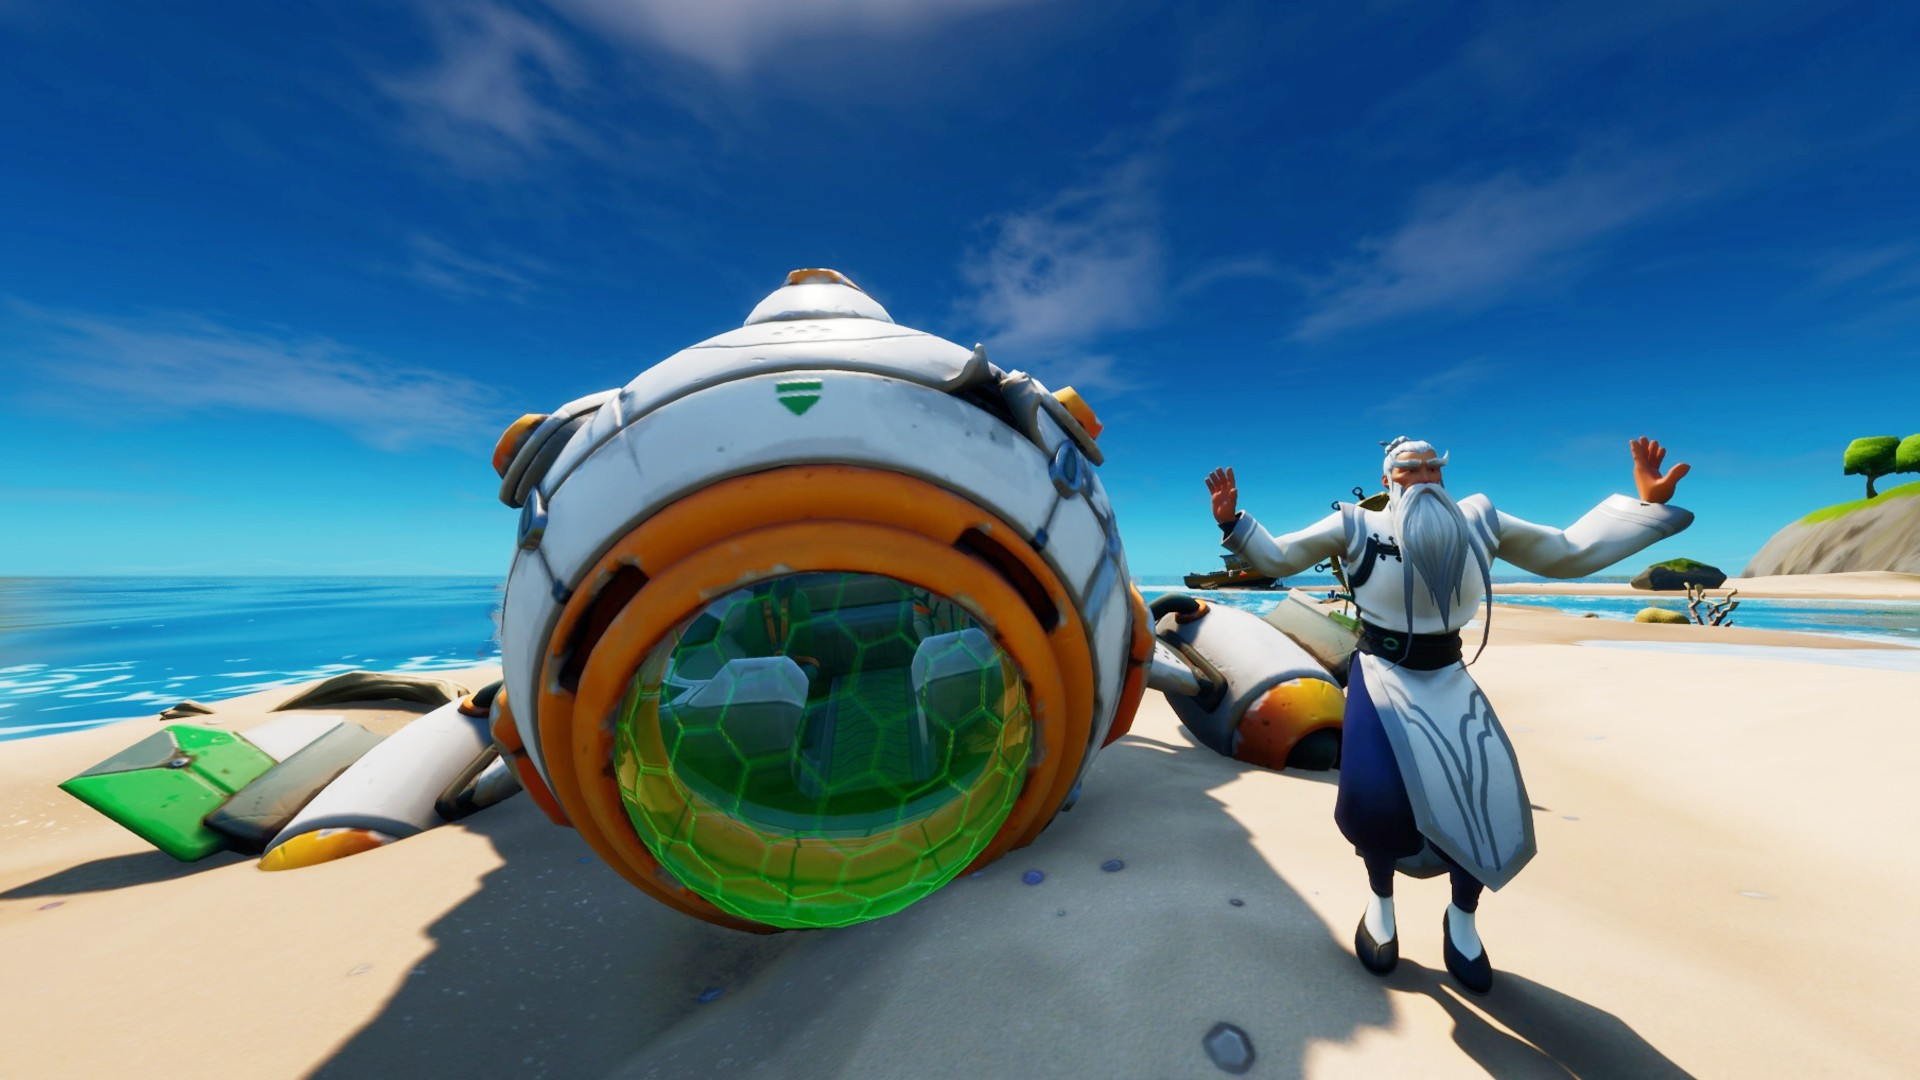 Rocket Ship Taking Off Fortnite Fortnite Astronaut Challenge How To Find The Ancient Ship And Install Its Missing Parts Pc Gamer